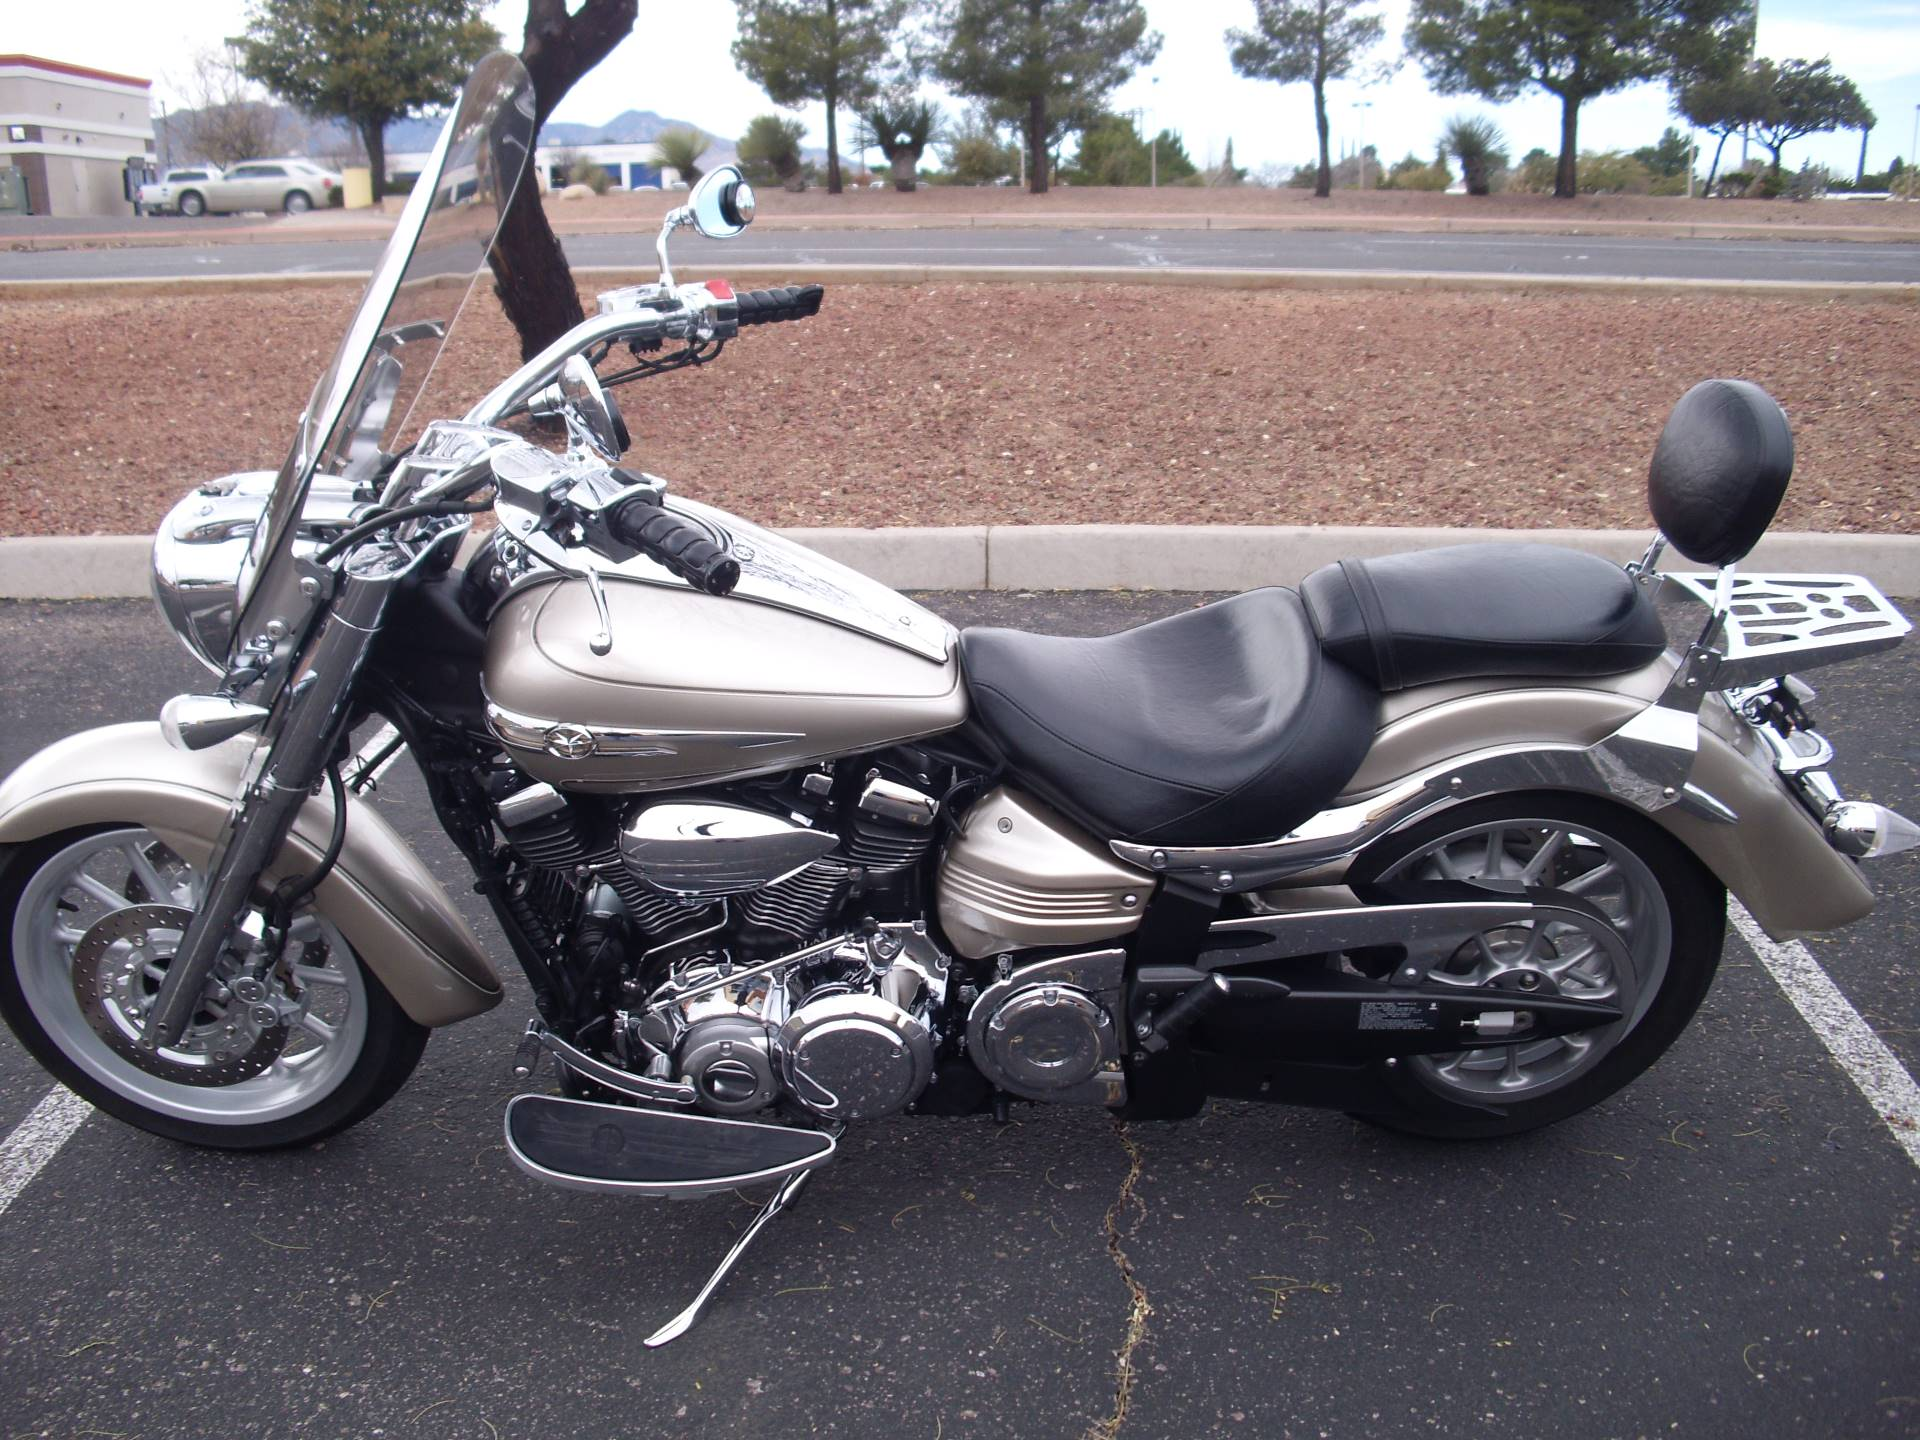 Used 2012 yamaha roadliner s motorcycles in sierra vista for Yamaha installment financing